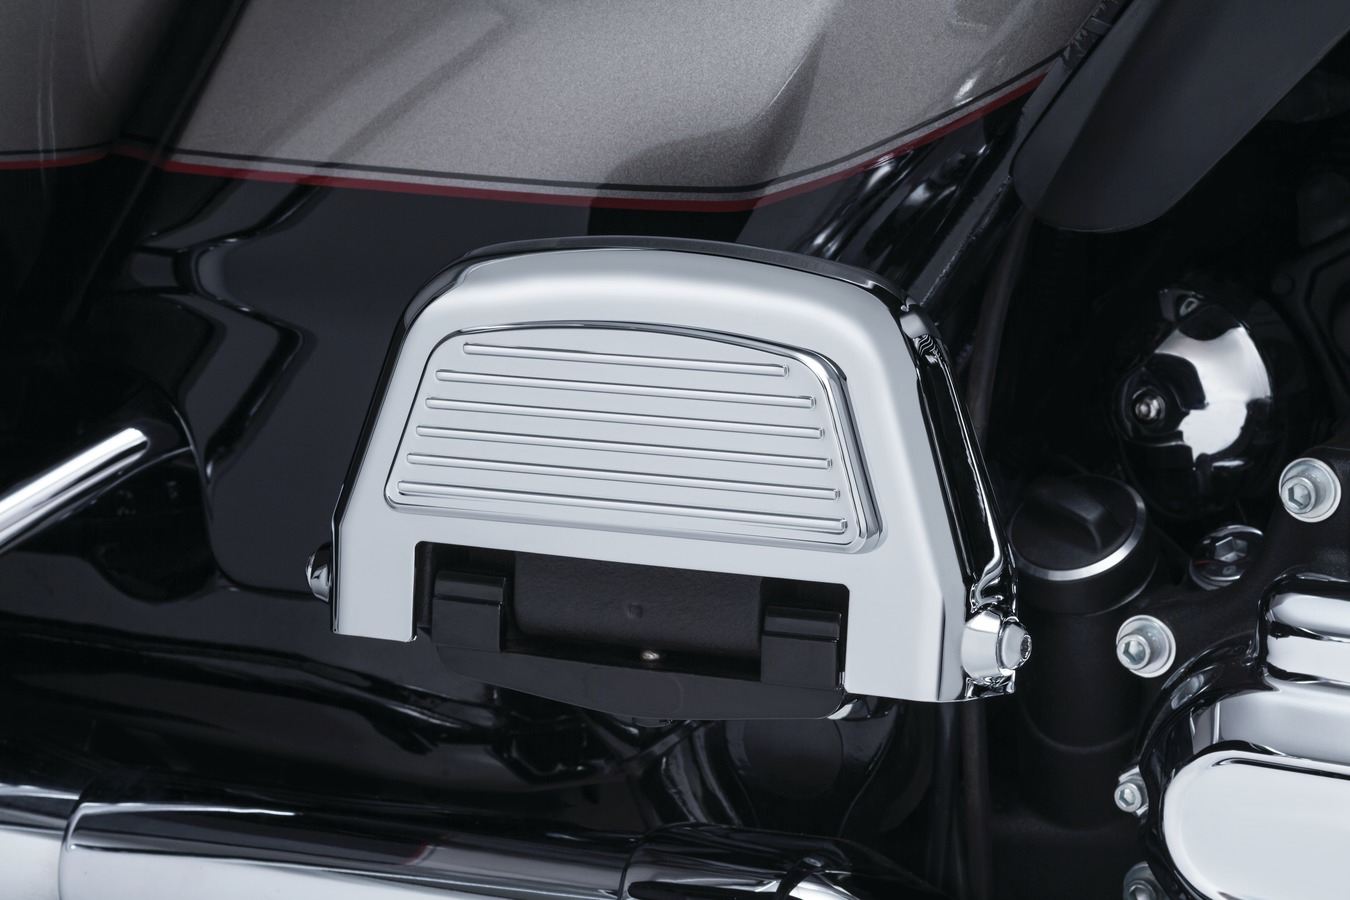 Finned Passenger Floorboard Covers For H-D Touring